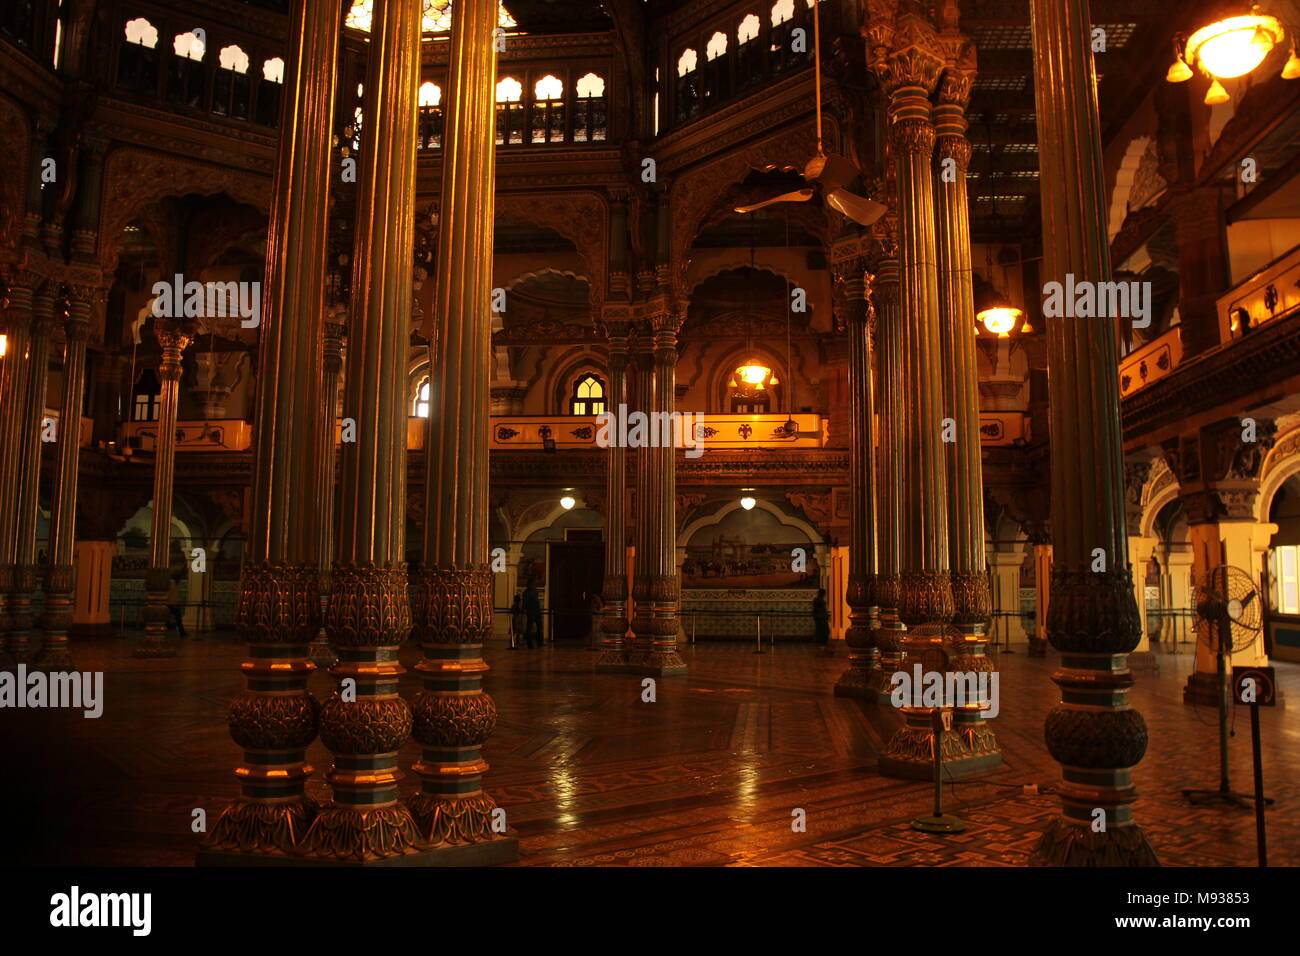 Mysore Palace Interior Lighting,in The Lights Of The Glorious Past   Stock  Image